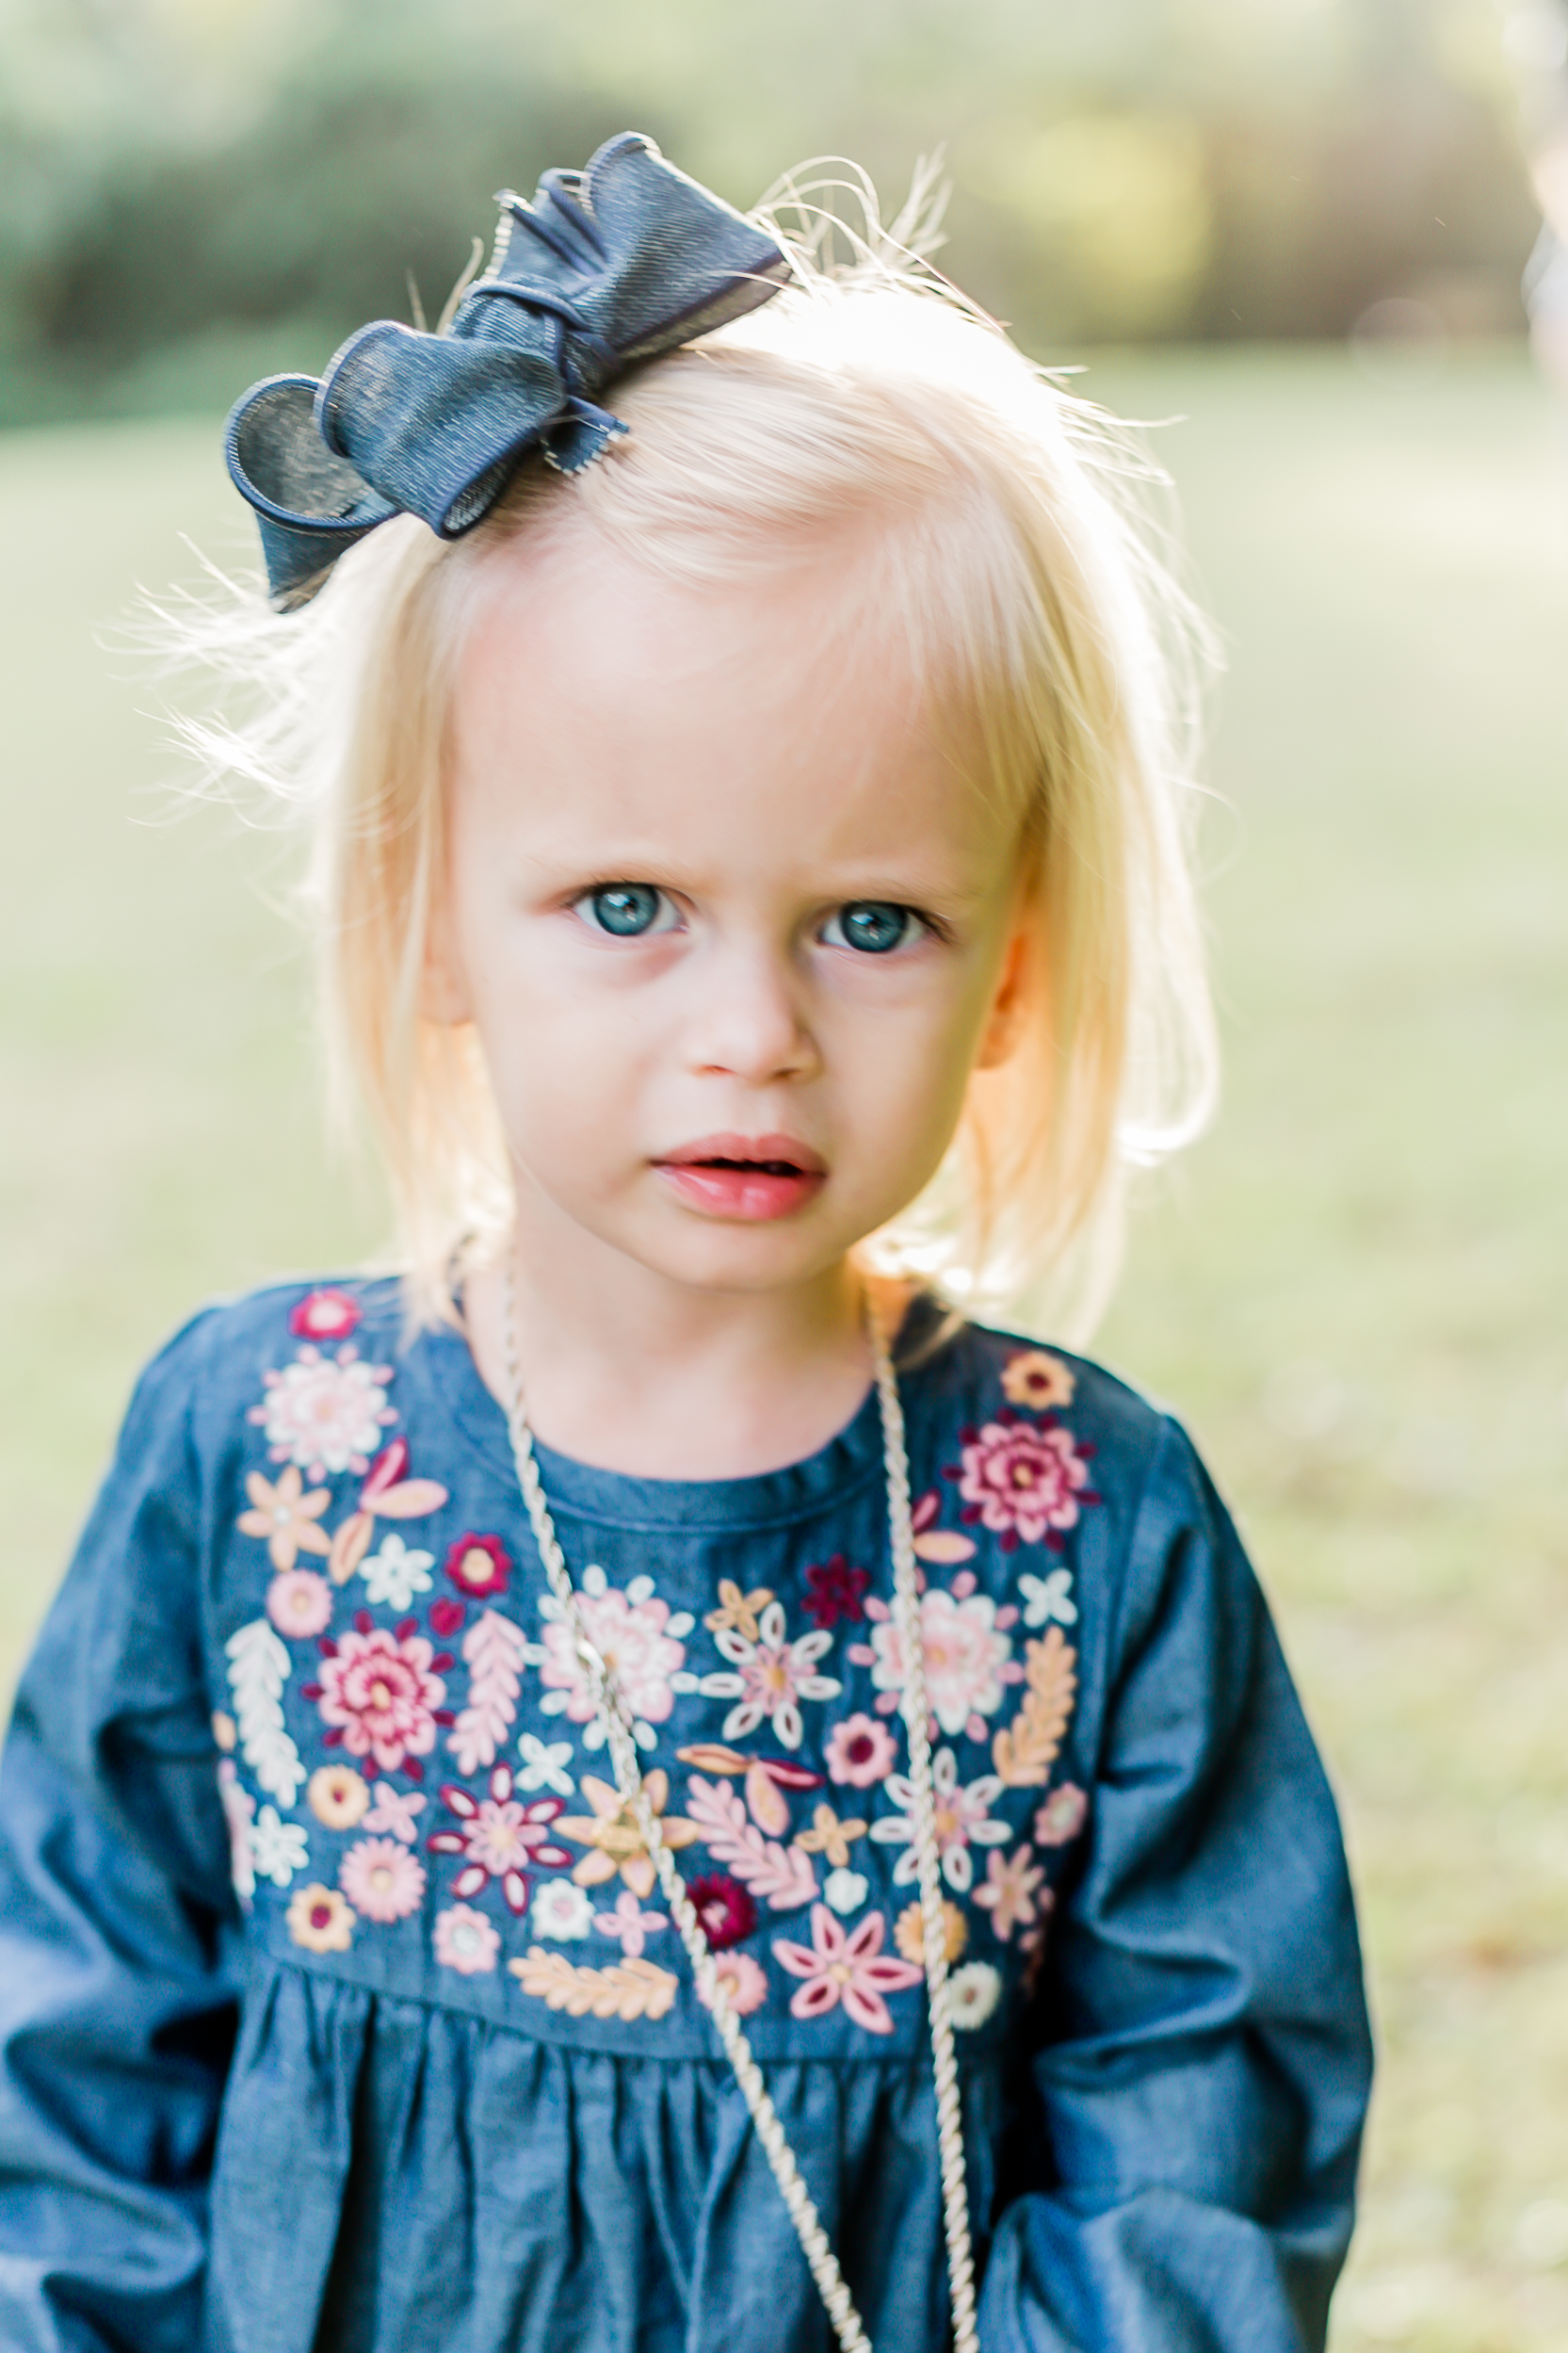 Hoelscher_FamilySession2018_ScreenRes-100.jpg